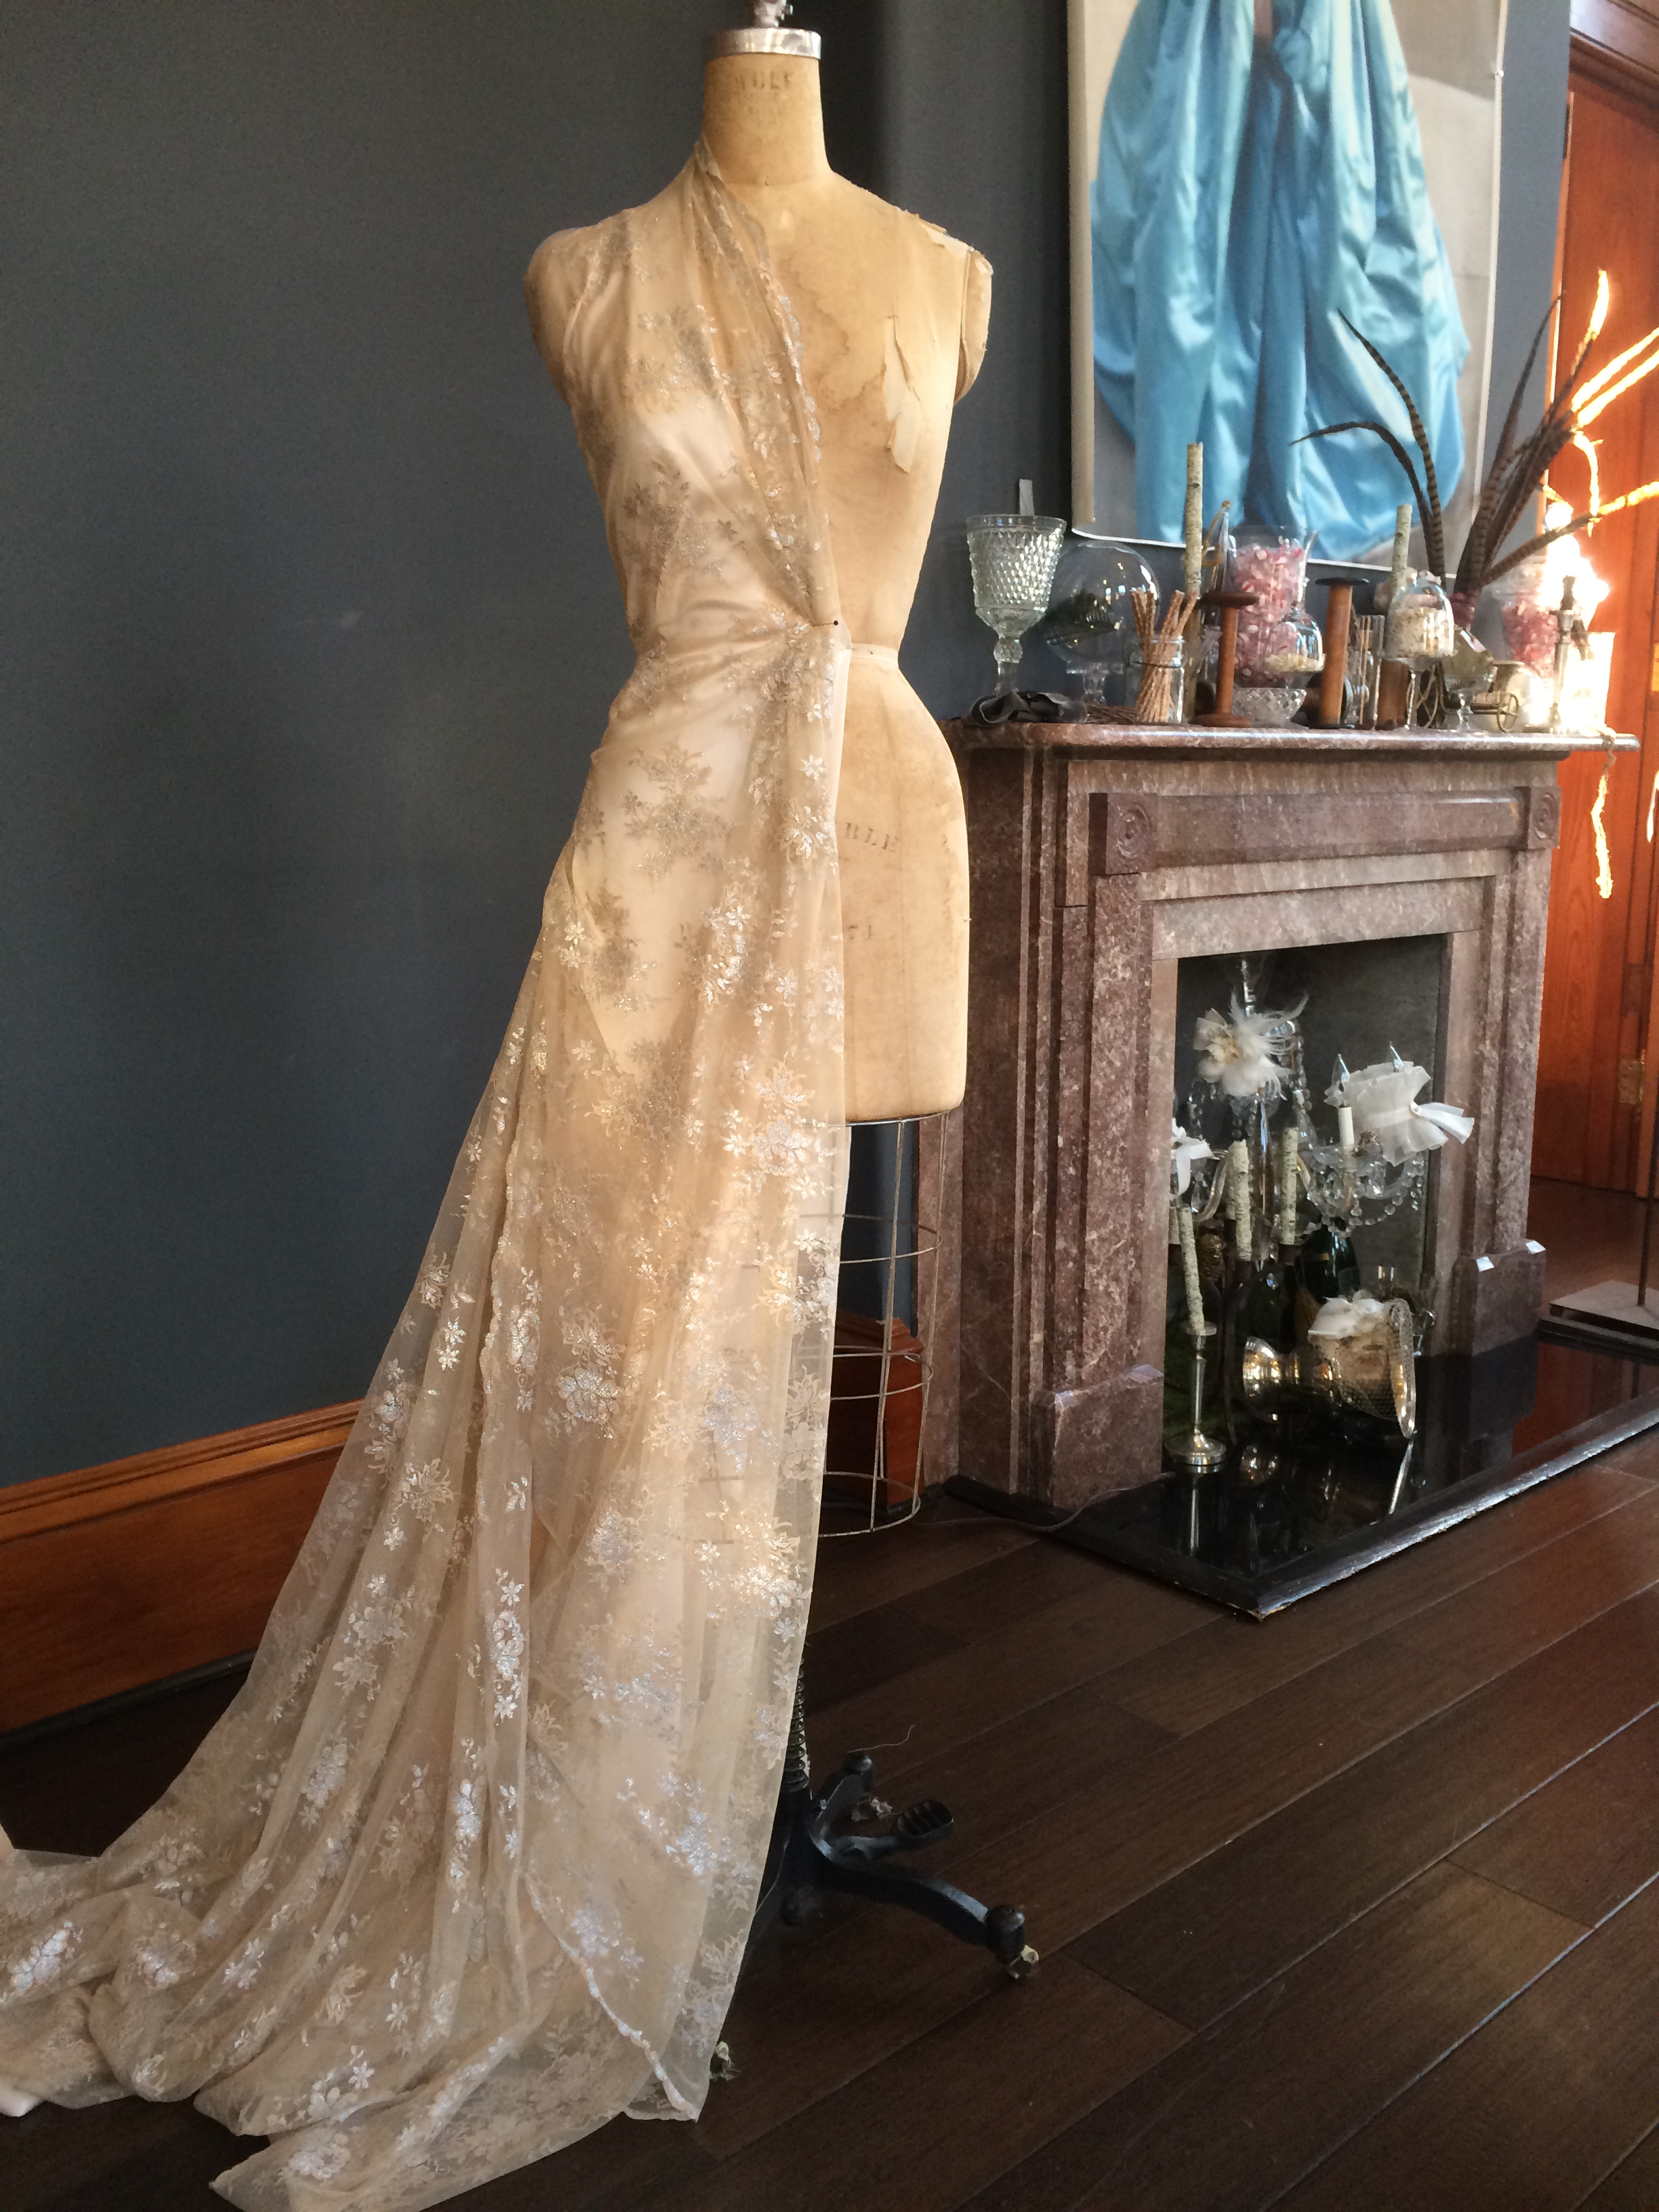 Draping lace for a custom gown